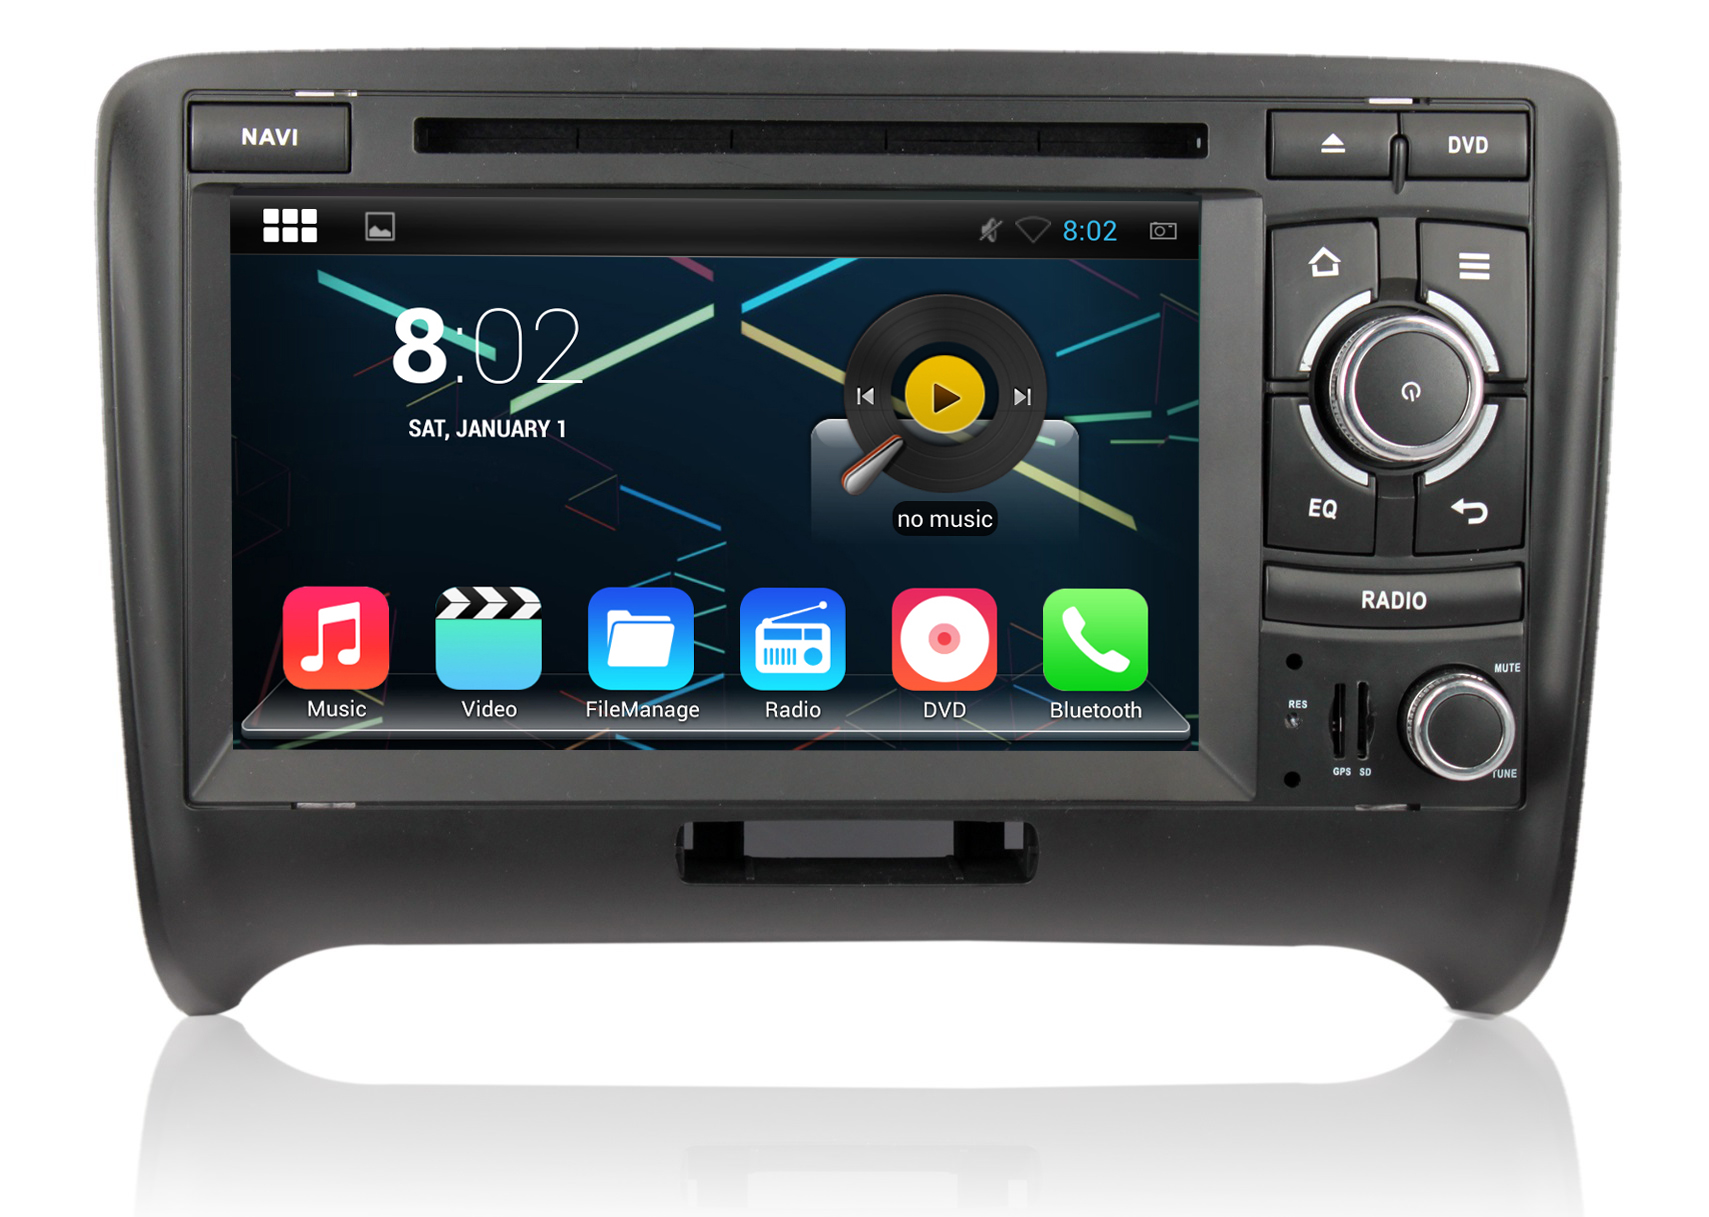 autoradio android 4 4 4 gps audi tt bluetooth usb sd dvd mirrorlink auto. Black Bedroom Furniture Sets. Home Design Ideas